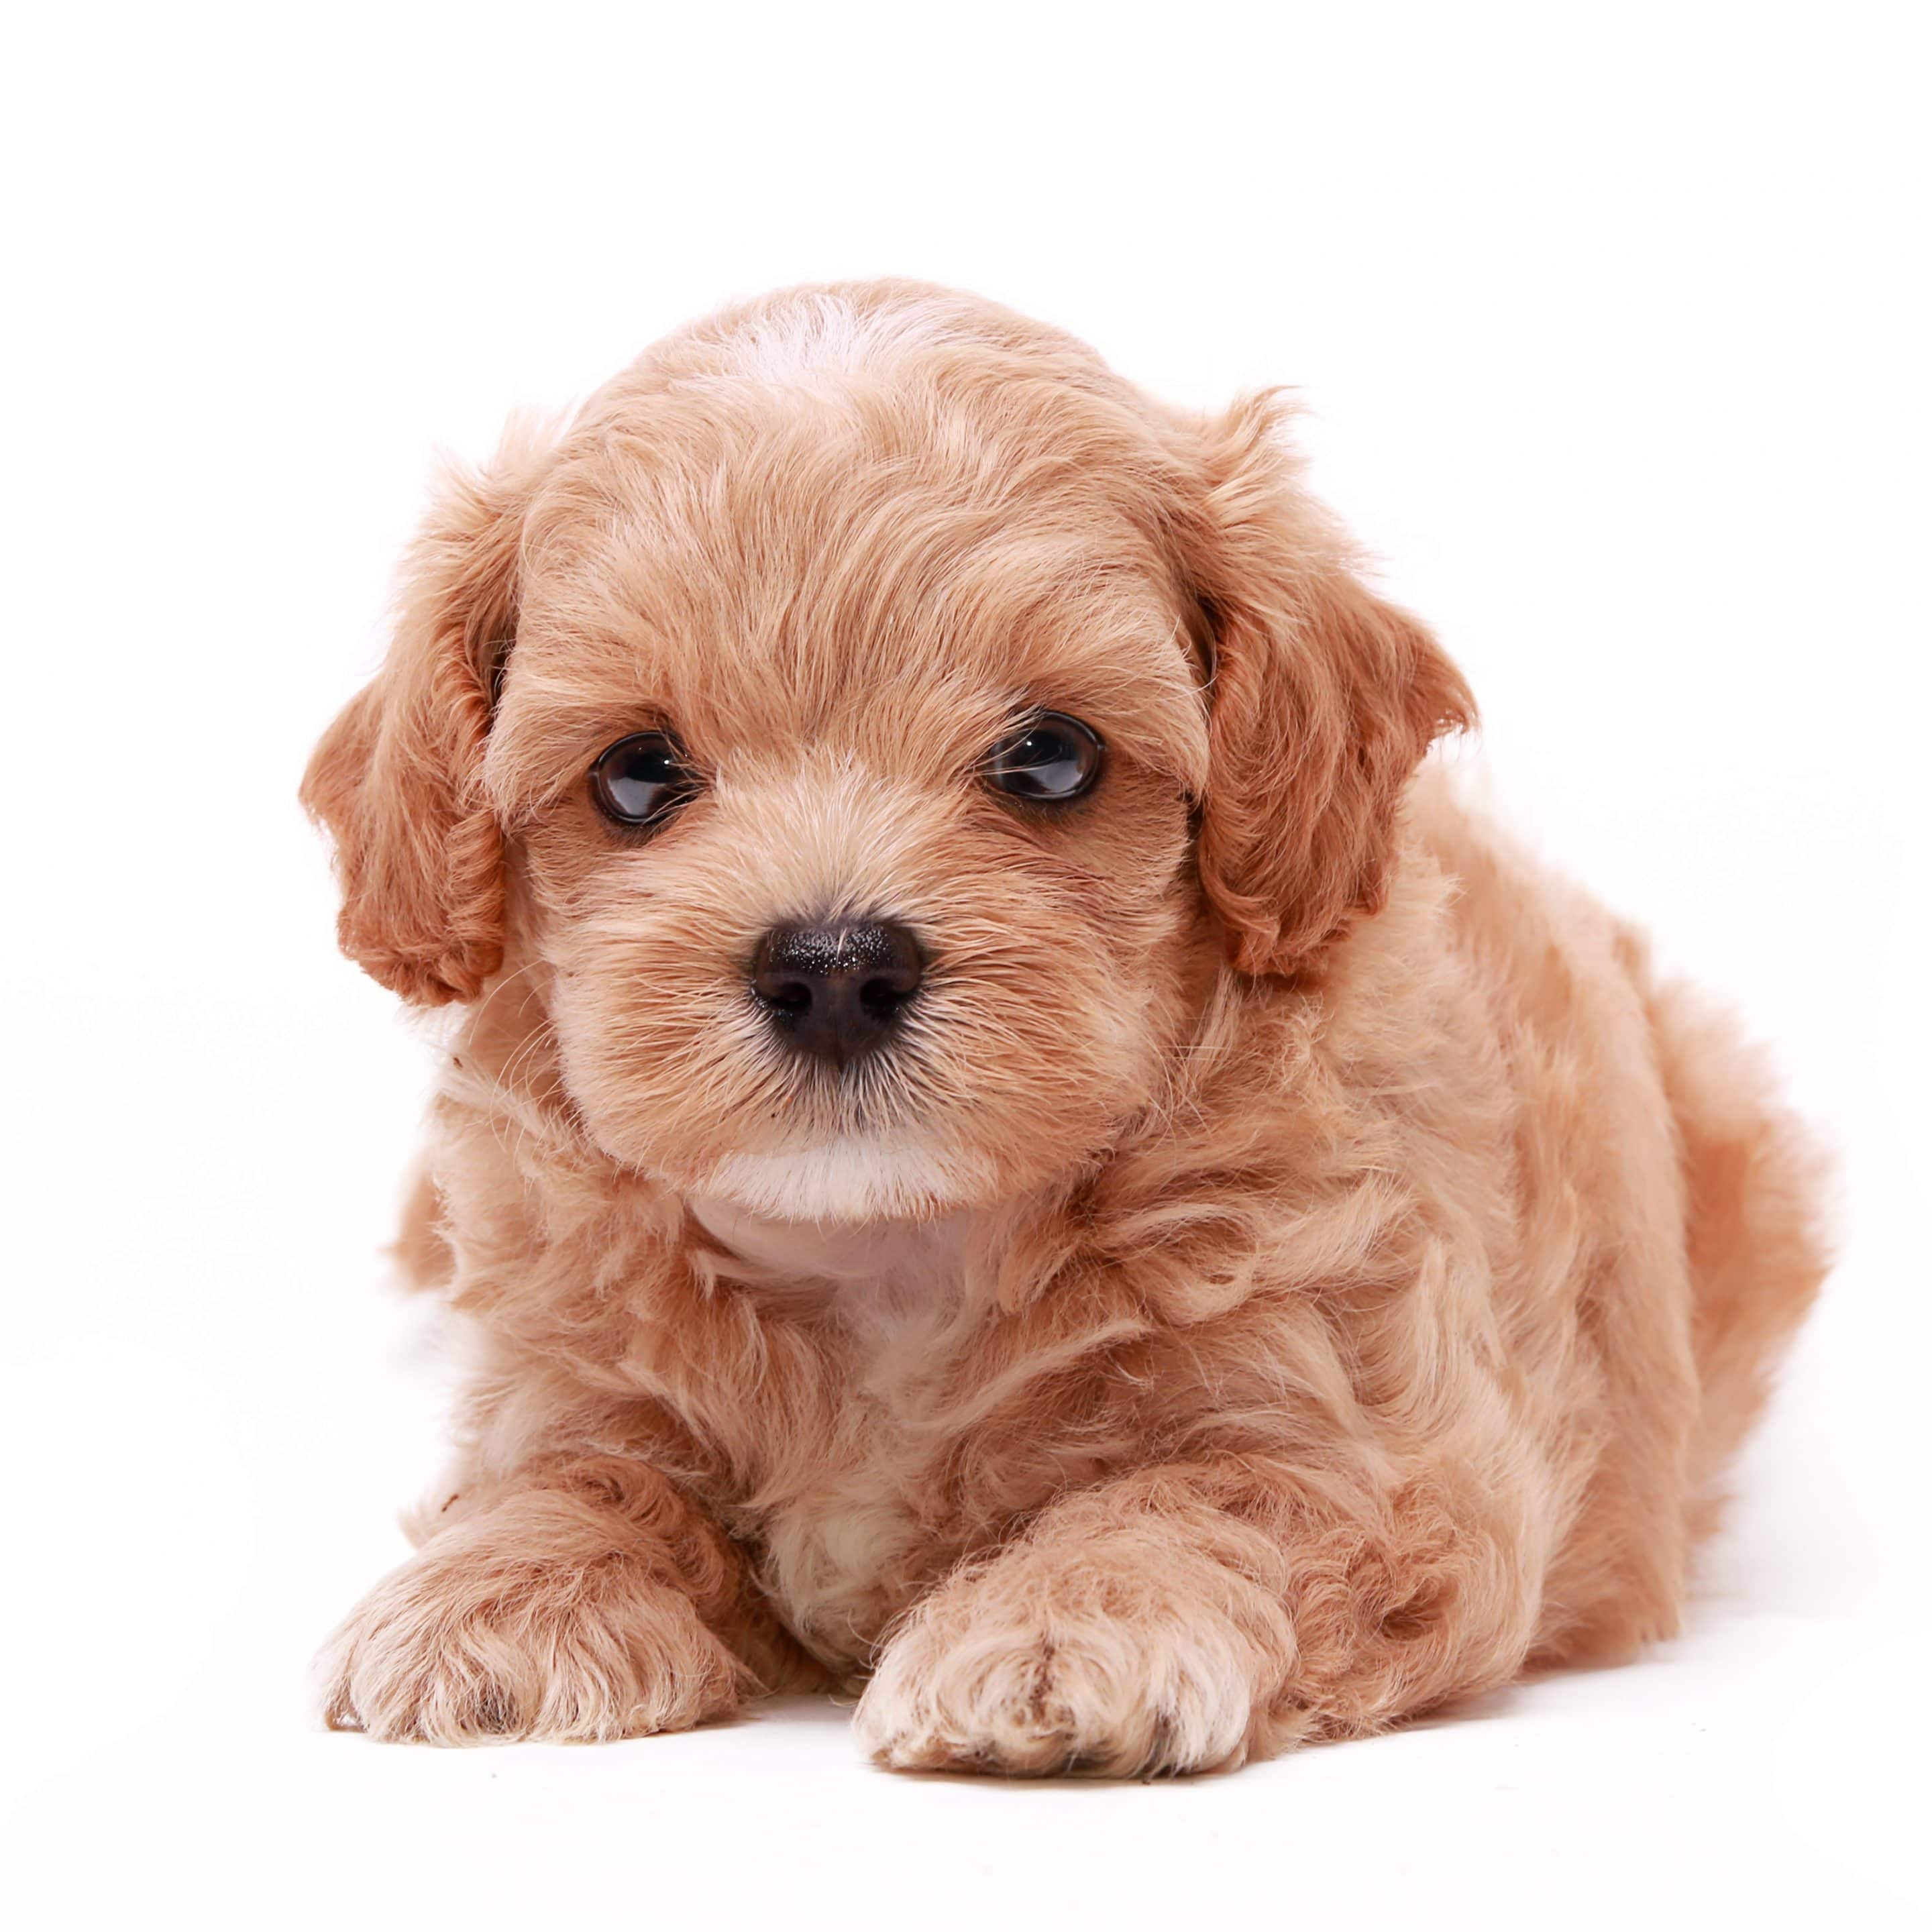 Buy Puppies Online Buy A Puppy Near Me Dogs For Sale